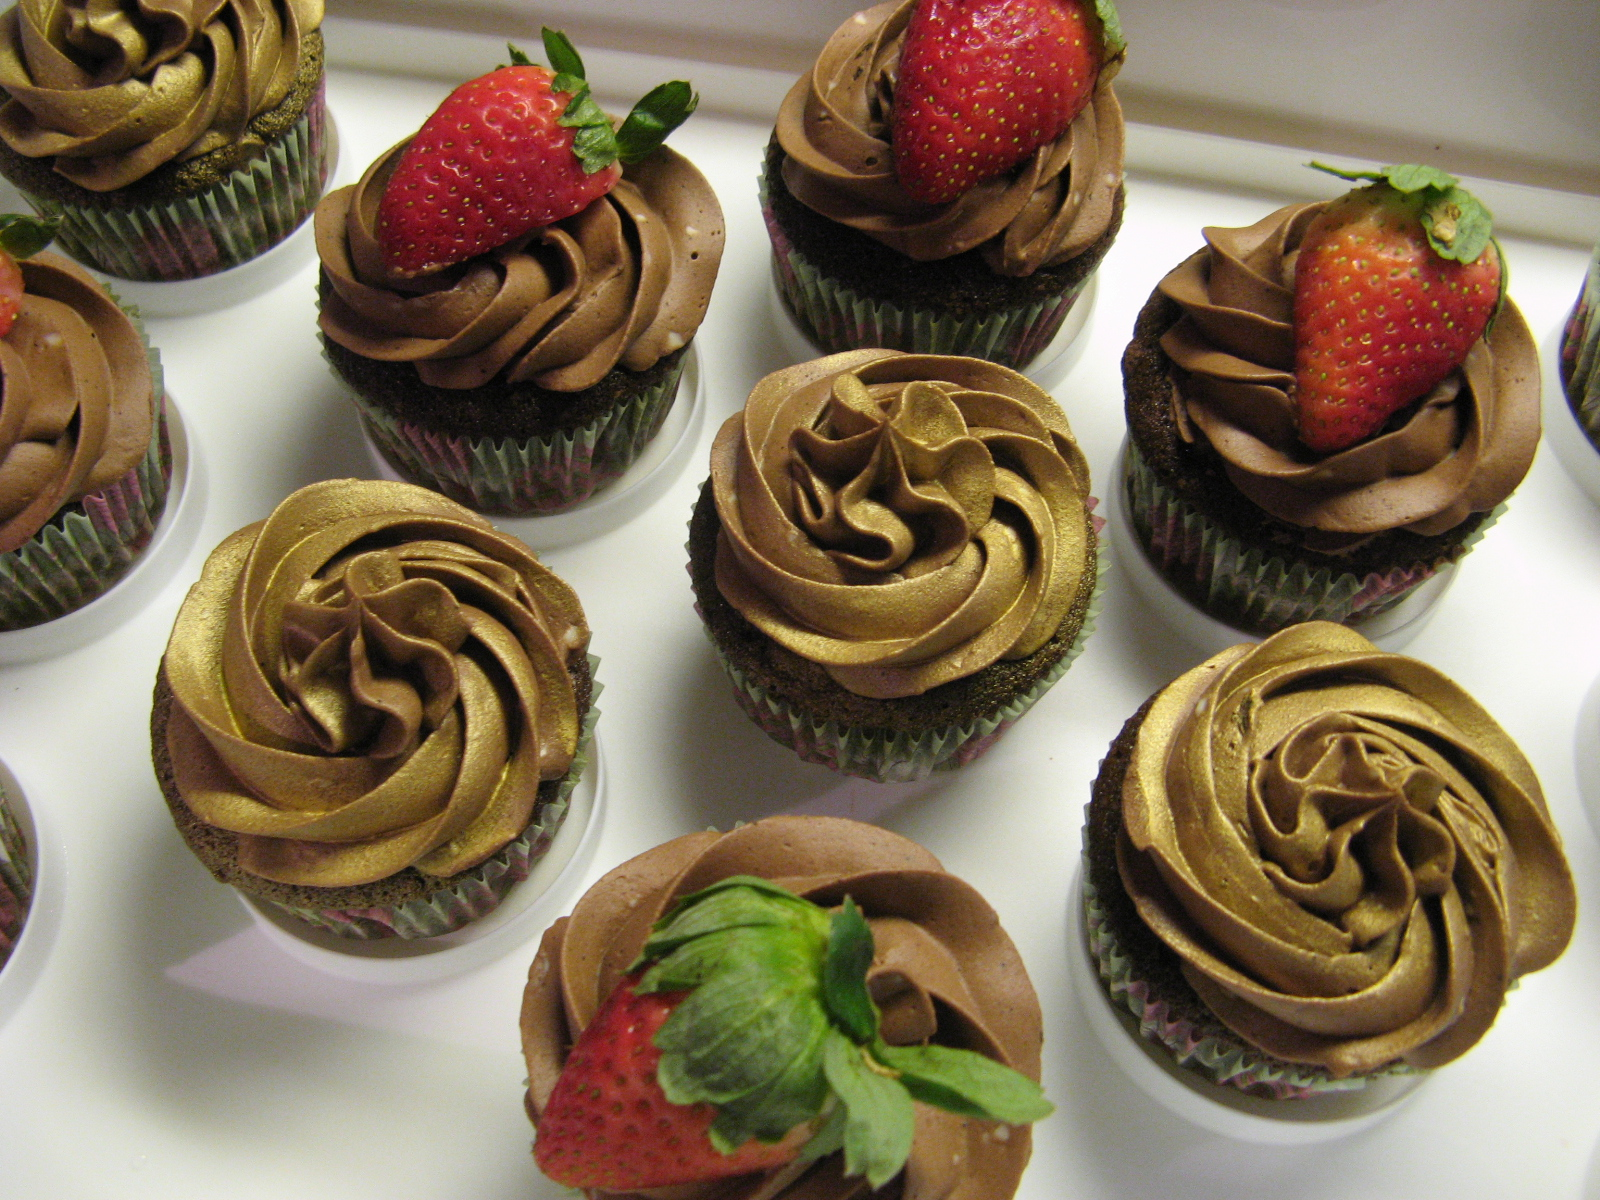 how to use luster dust on chocolate covered strawberries